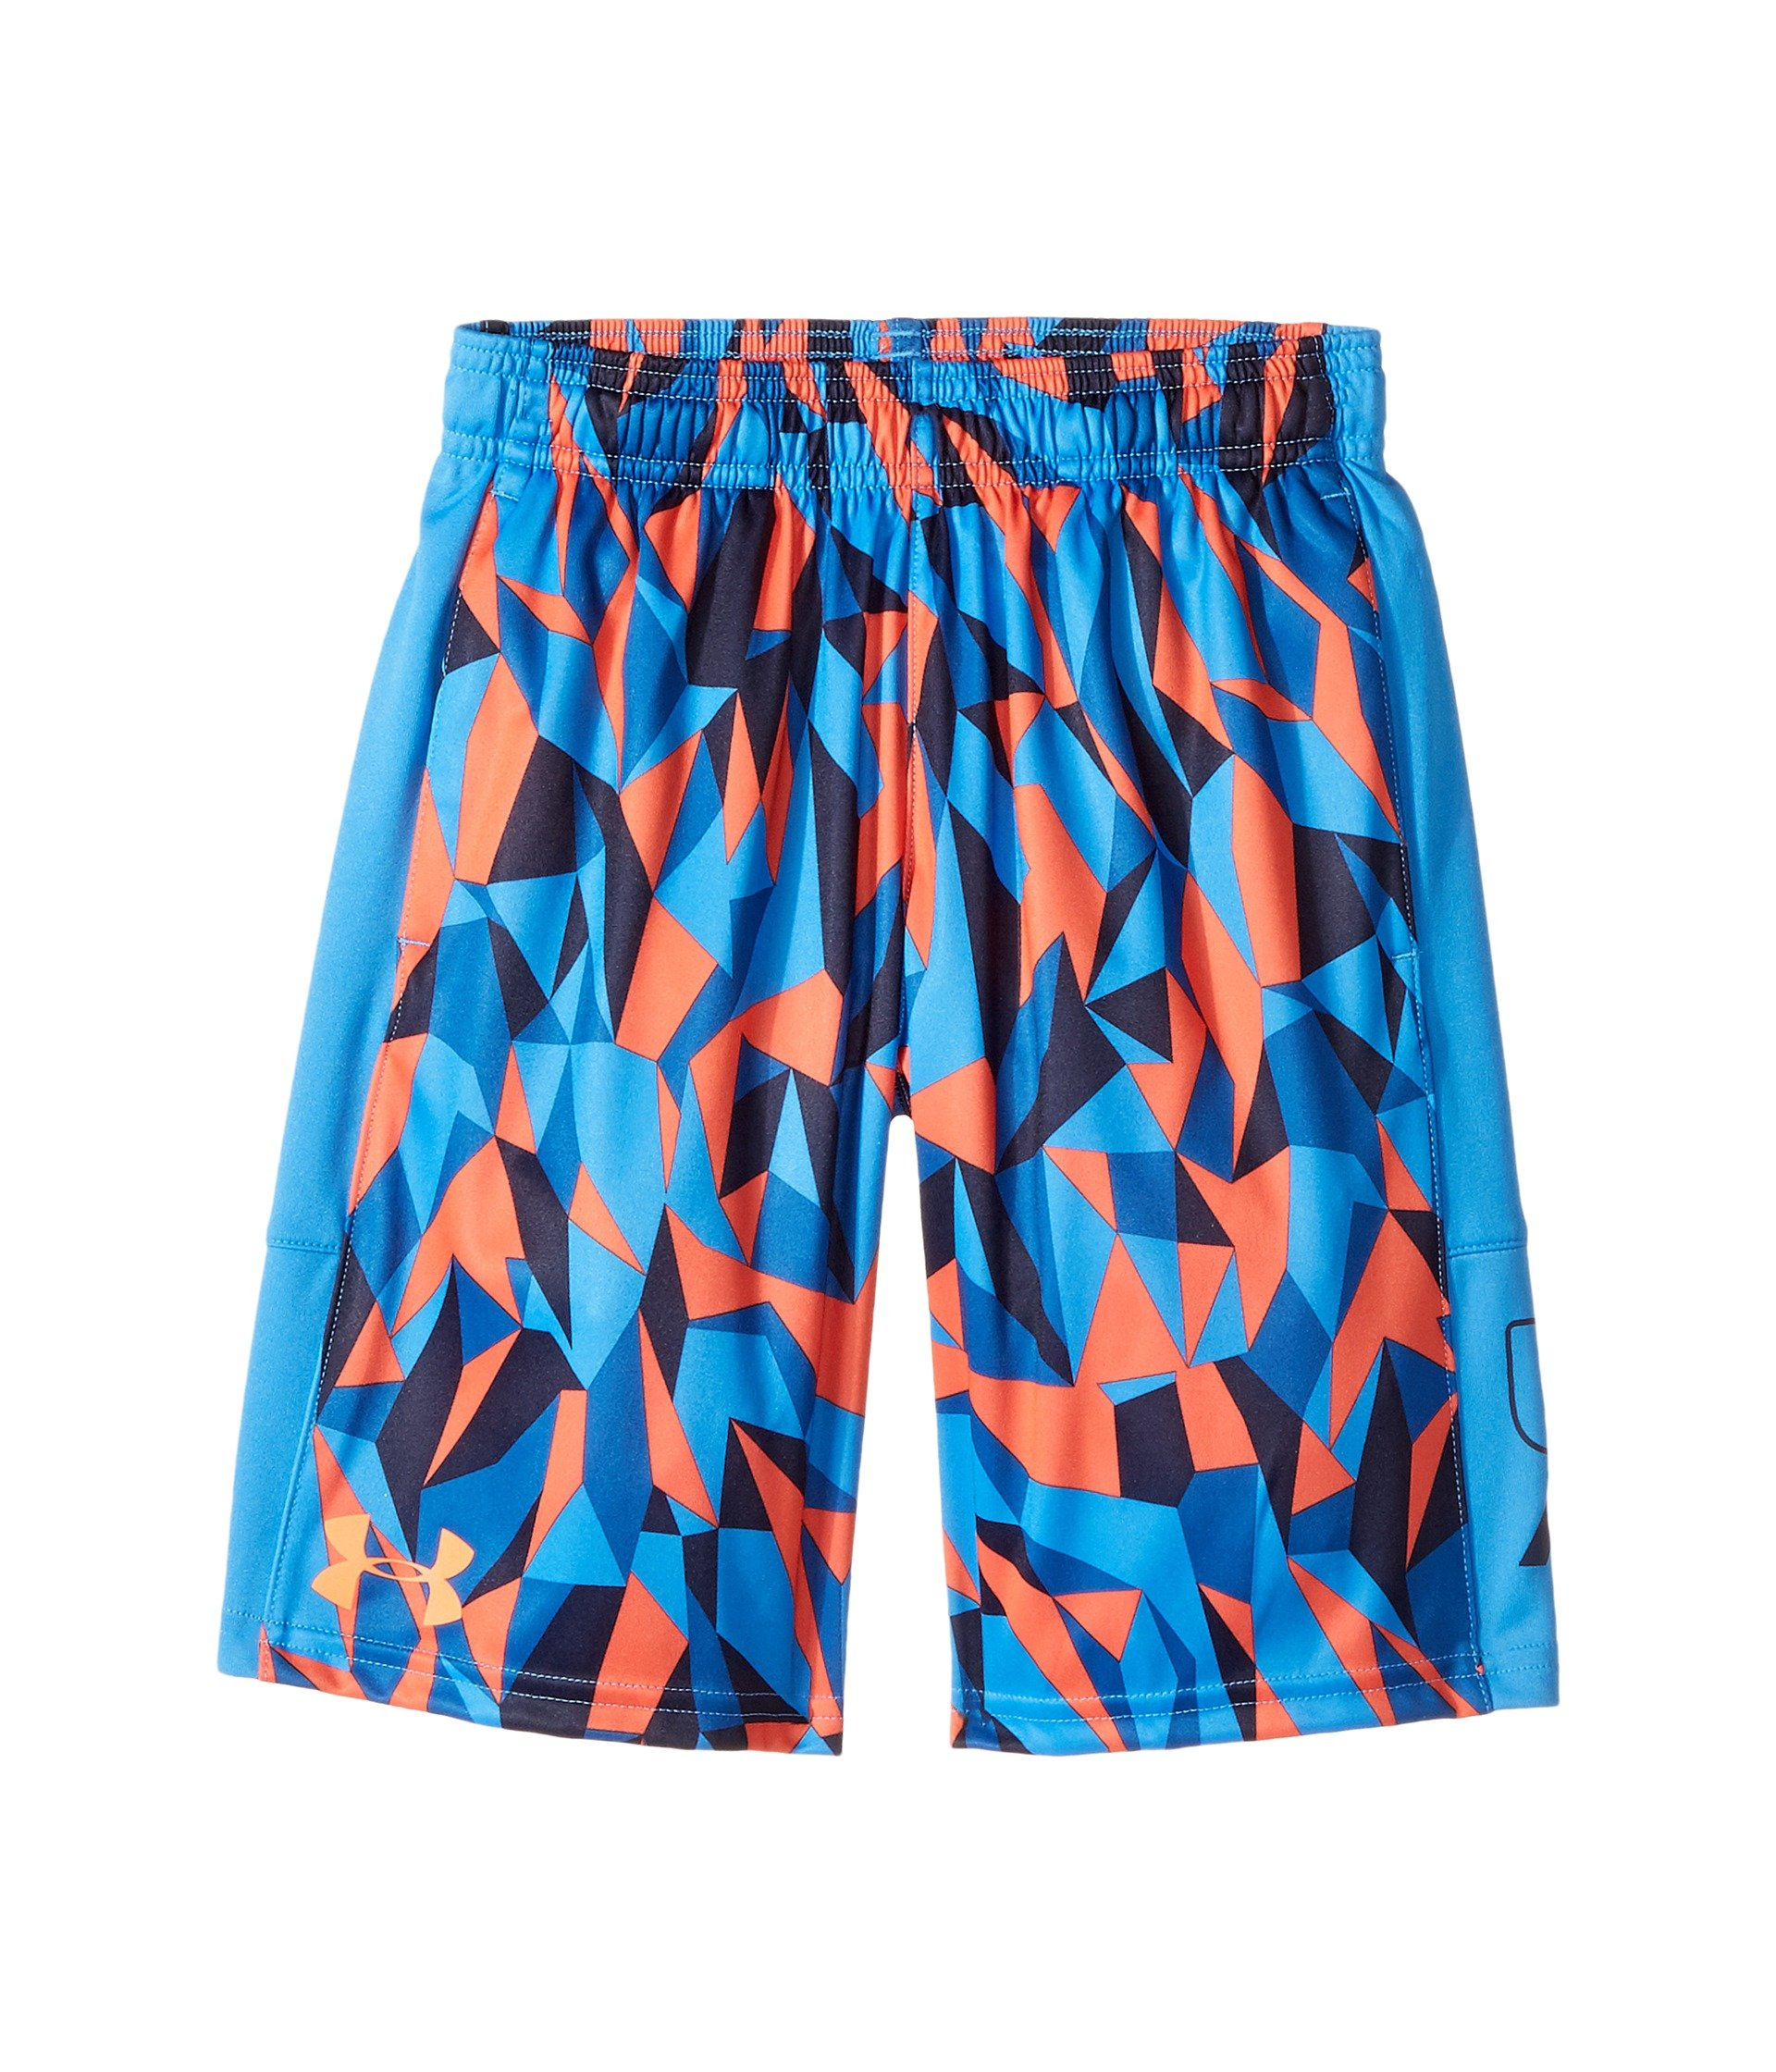 Under Armour Kids Boy's Instinct Printed Shorts (Big Kids) Mako Blue/Mako Blue/Magma Orange XS (7 Big Kids) by Under Armour